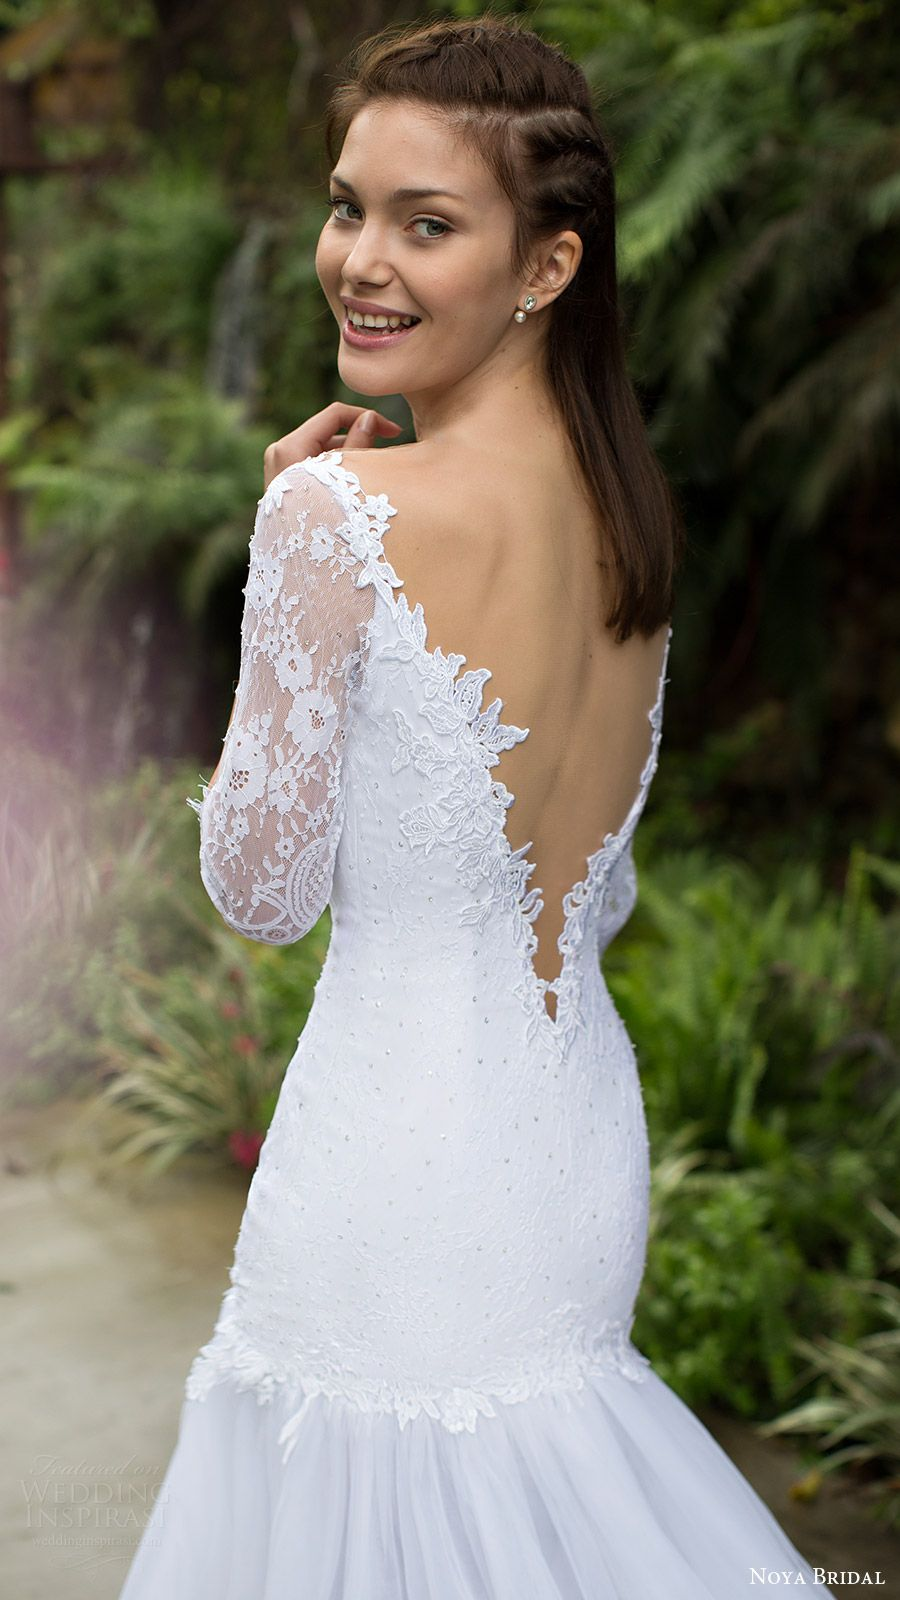 Noya bridal ucariaud collection wedding dresses exquisite wedding